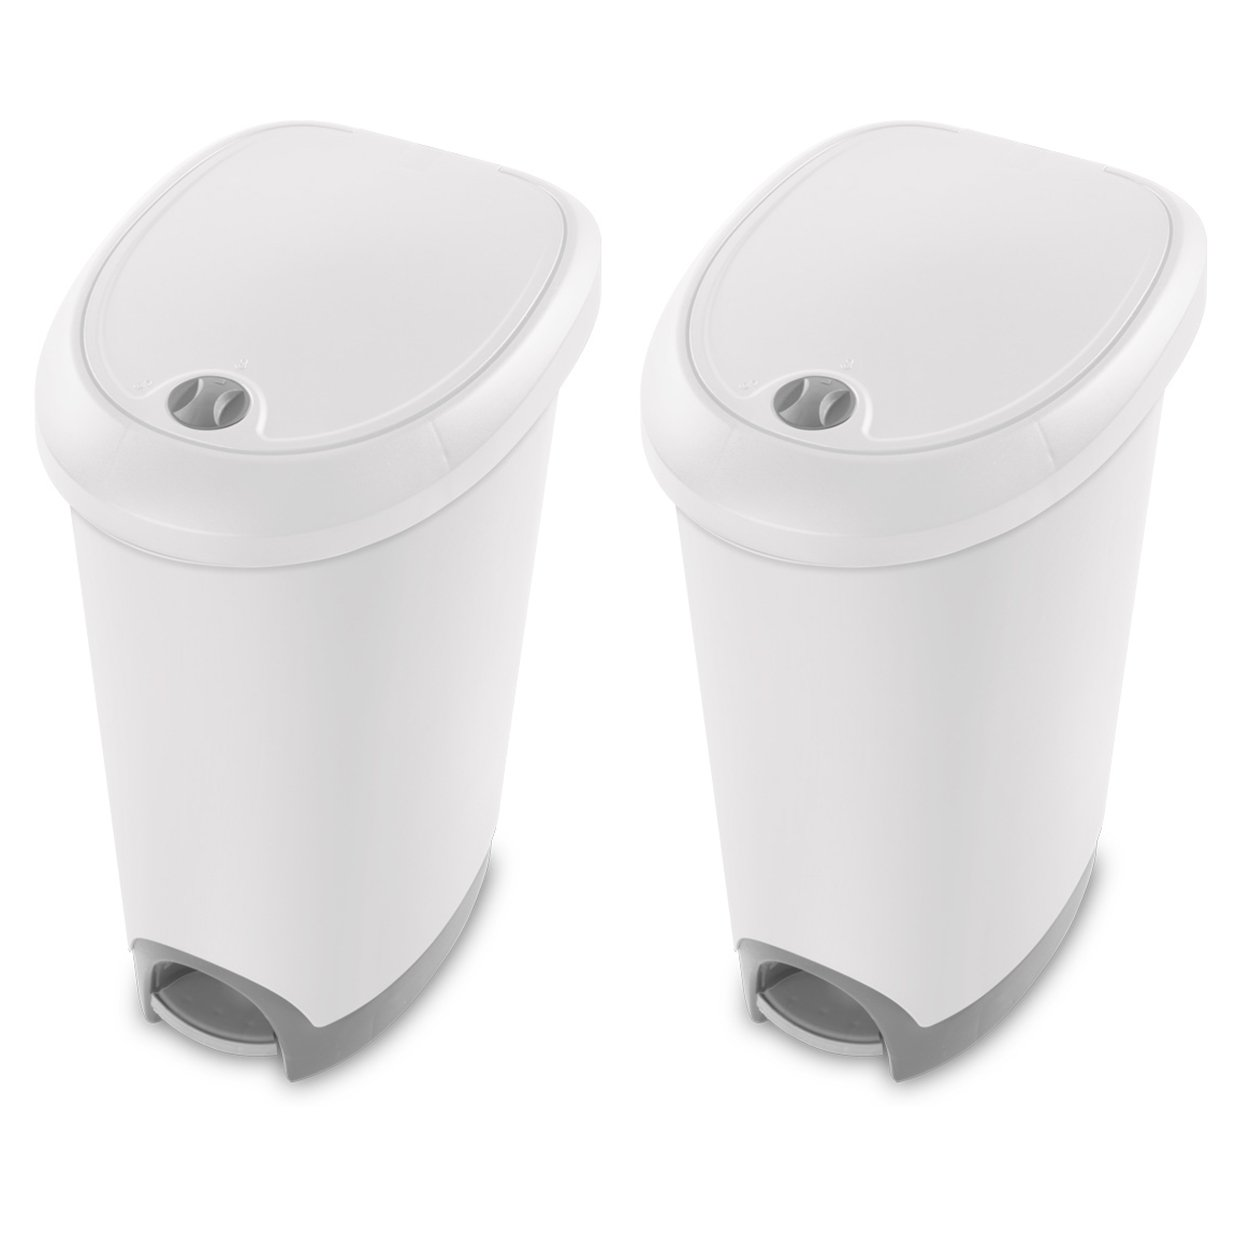 STERILITE 12.6 Gallon Locking StepOn Wastebasket, White (2 Pack) | 10738002